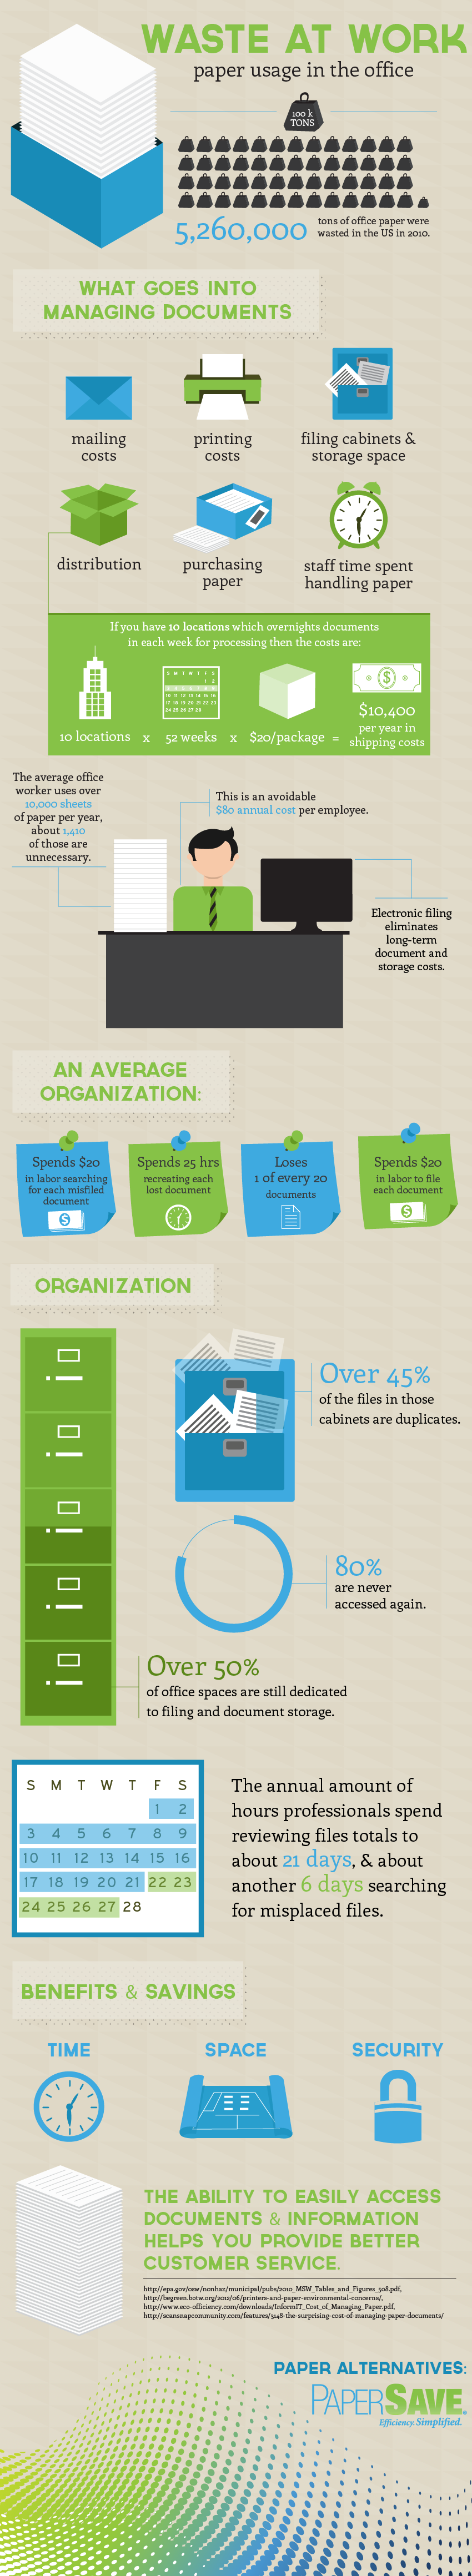 Infographic-Waste-at-Work-1